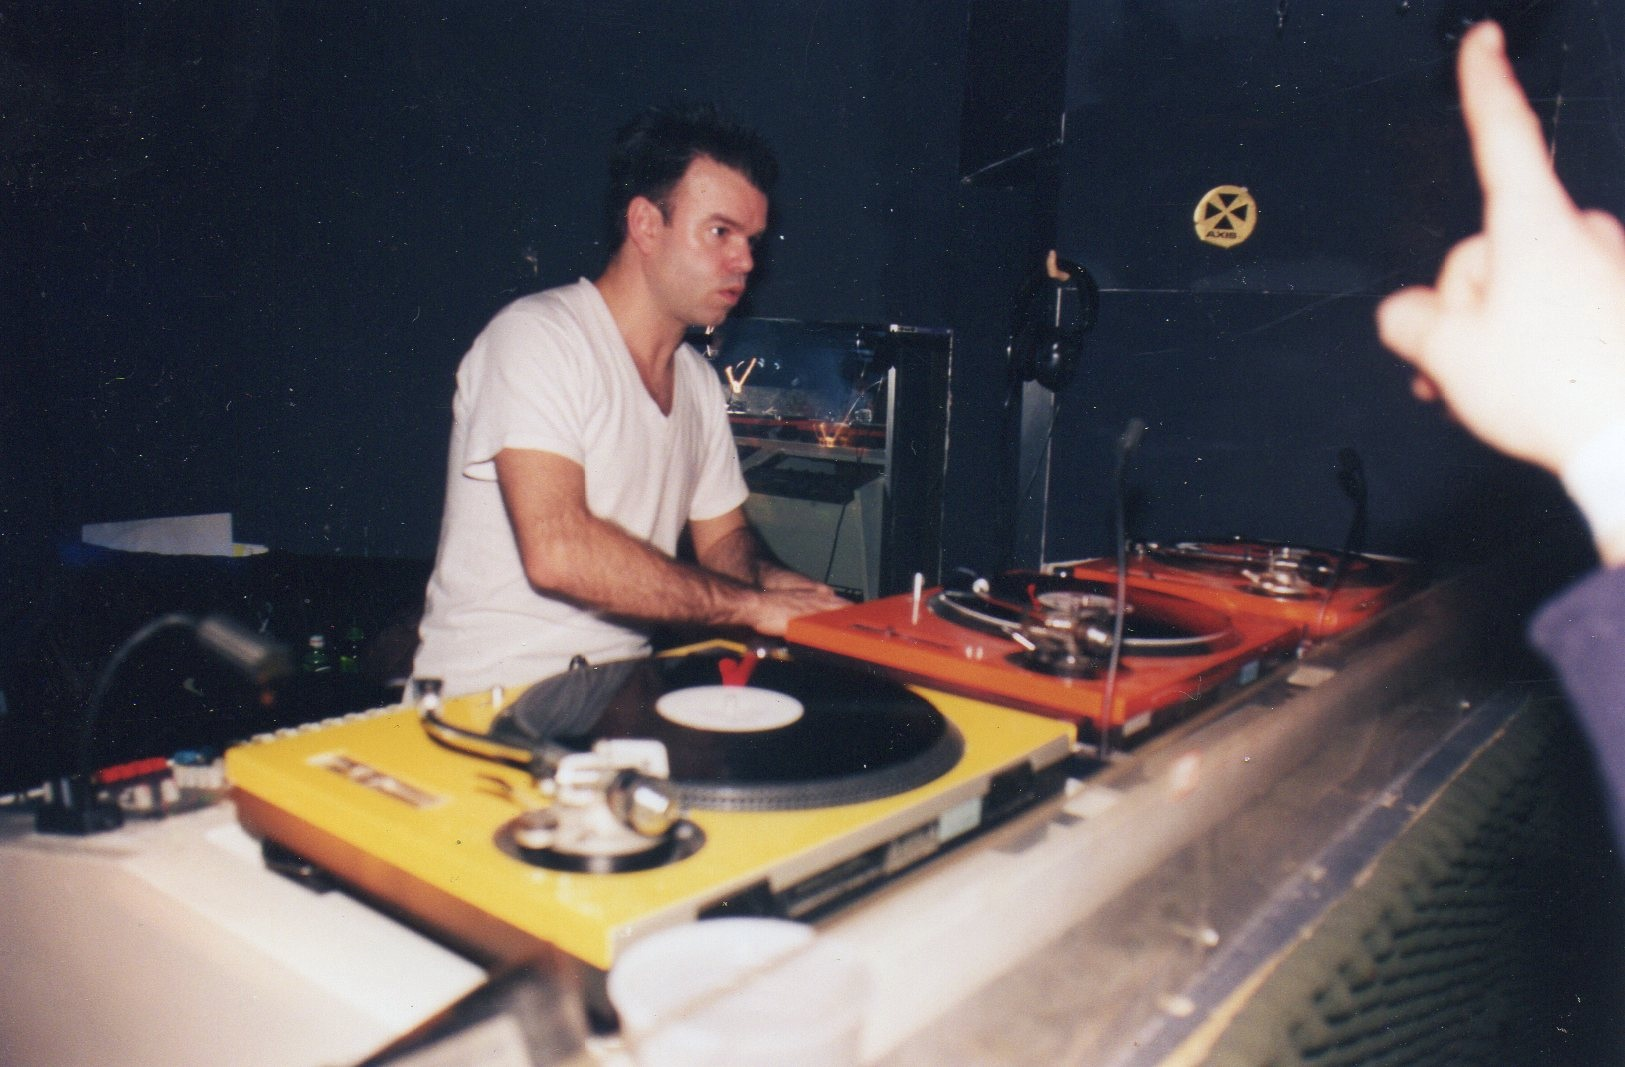 Paul Oakenfold at Industry in 1997. Photo courtesy of Gavin Bryan.